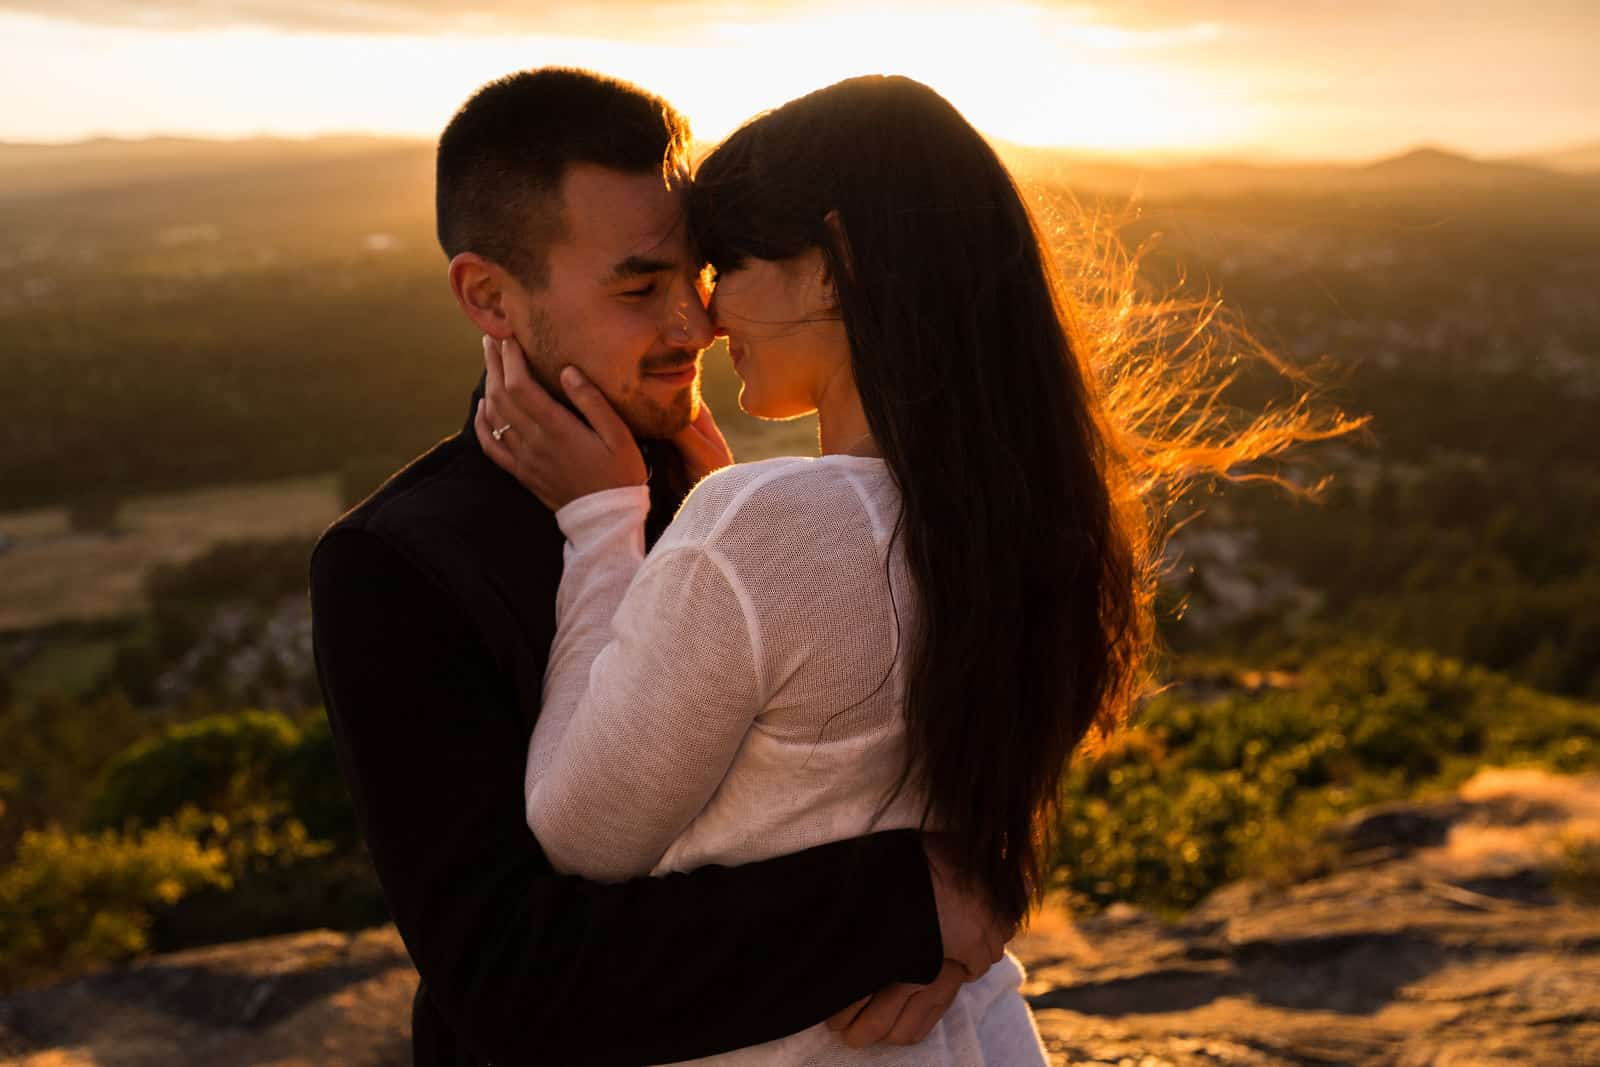 A young couple embraces during golden hour. Photo by Marlboro Wang.